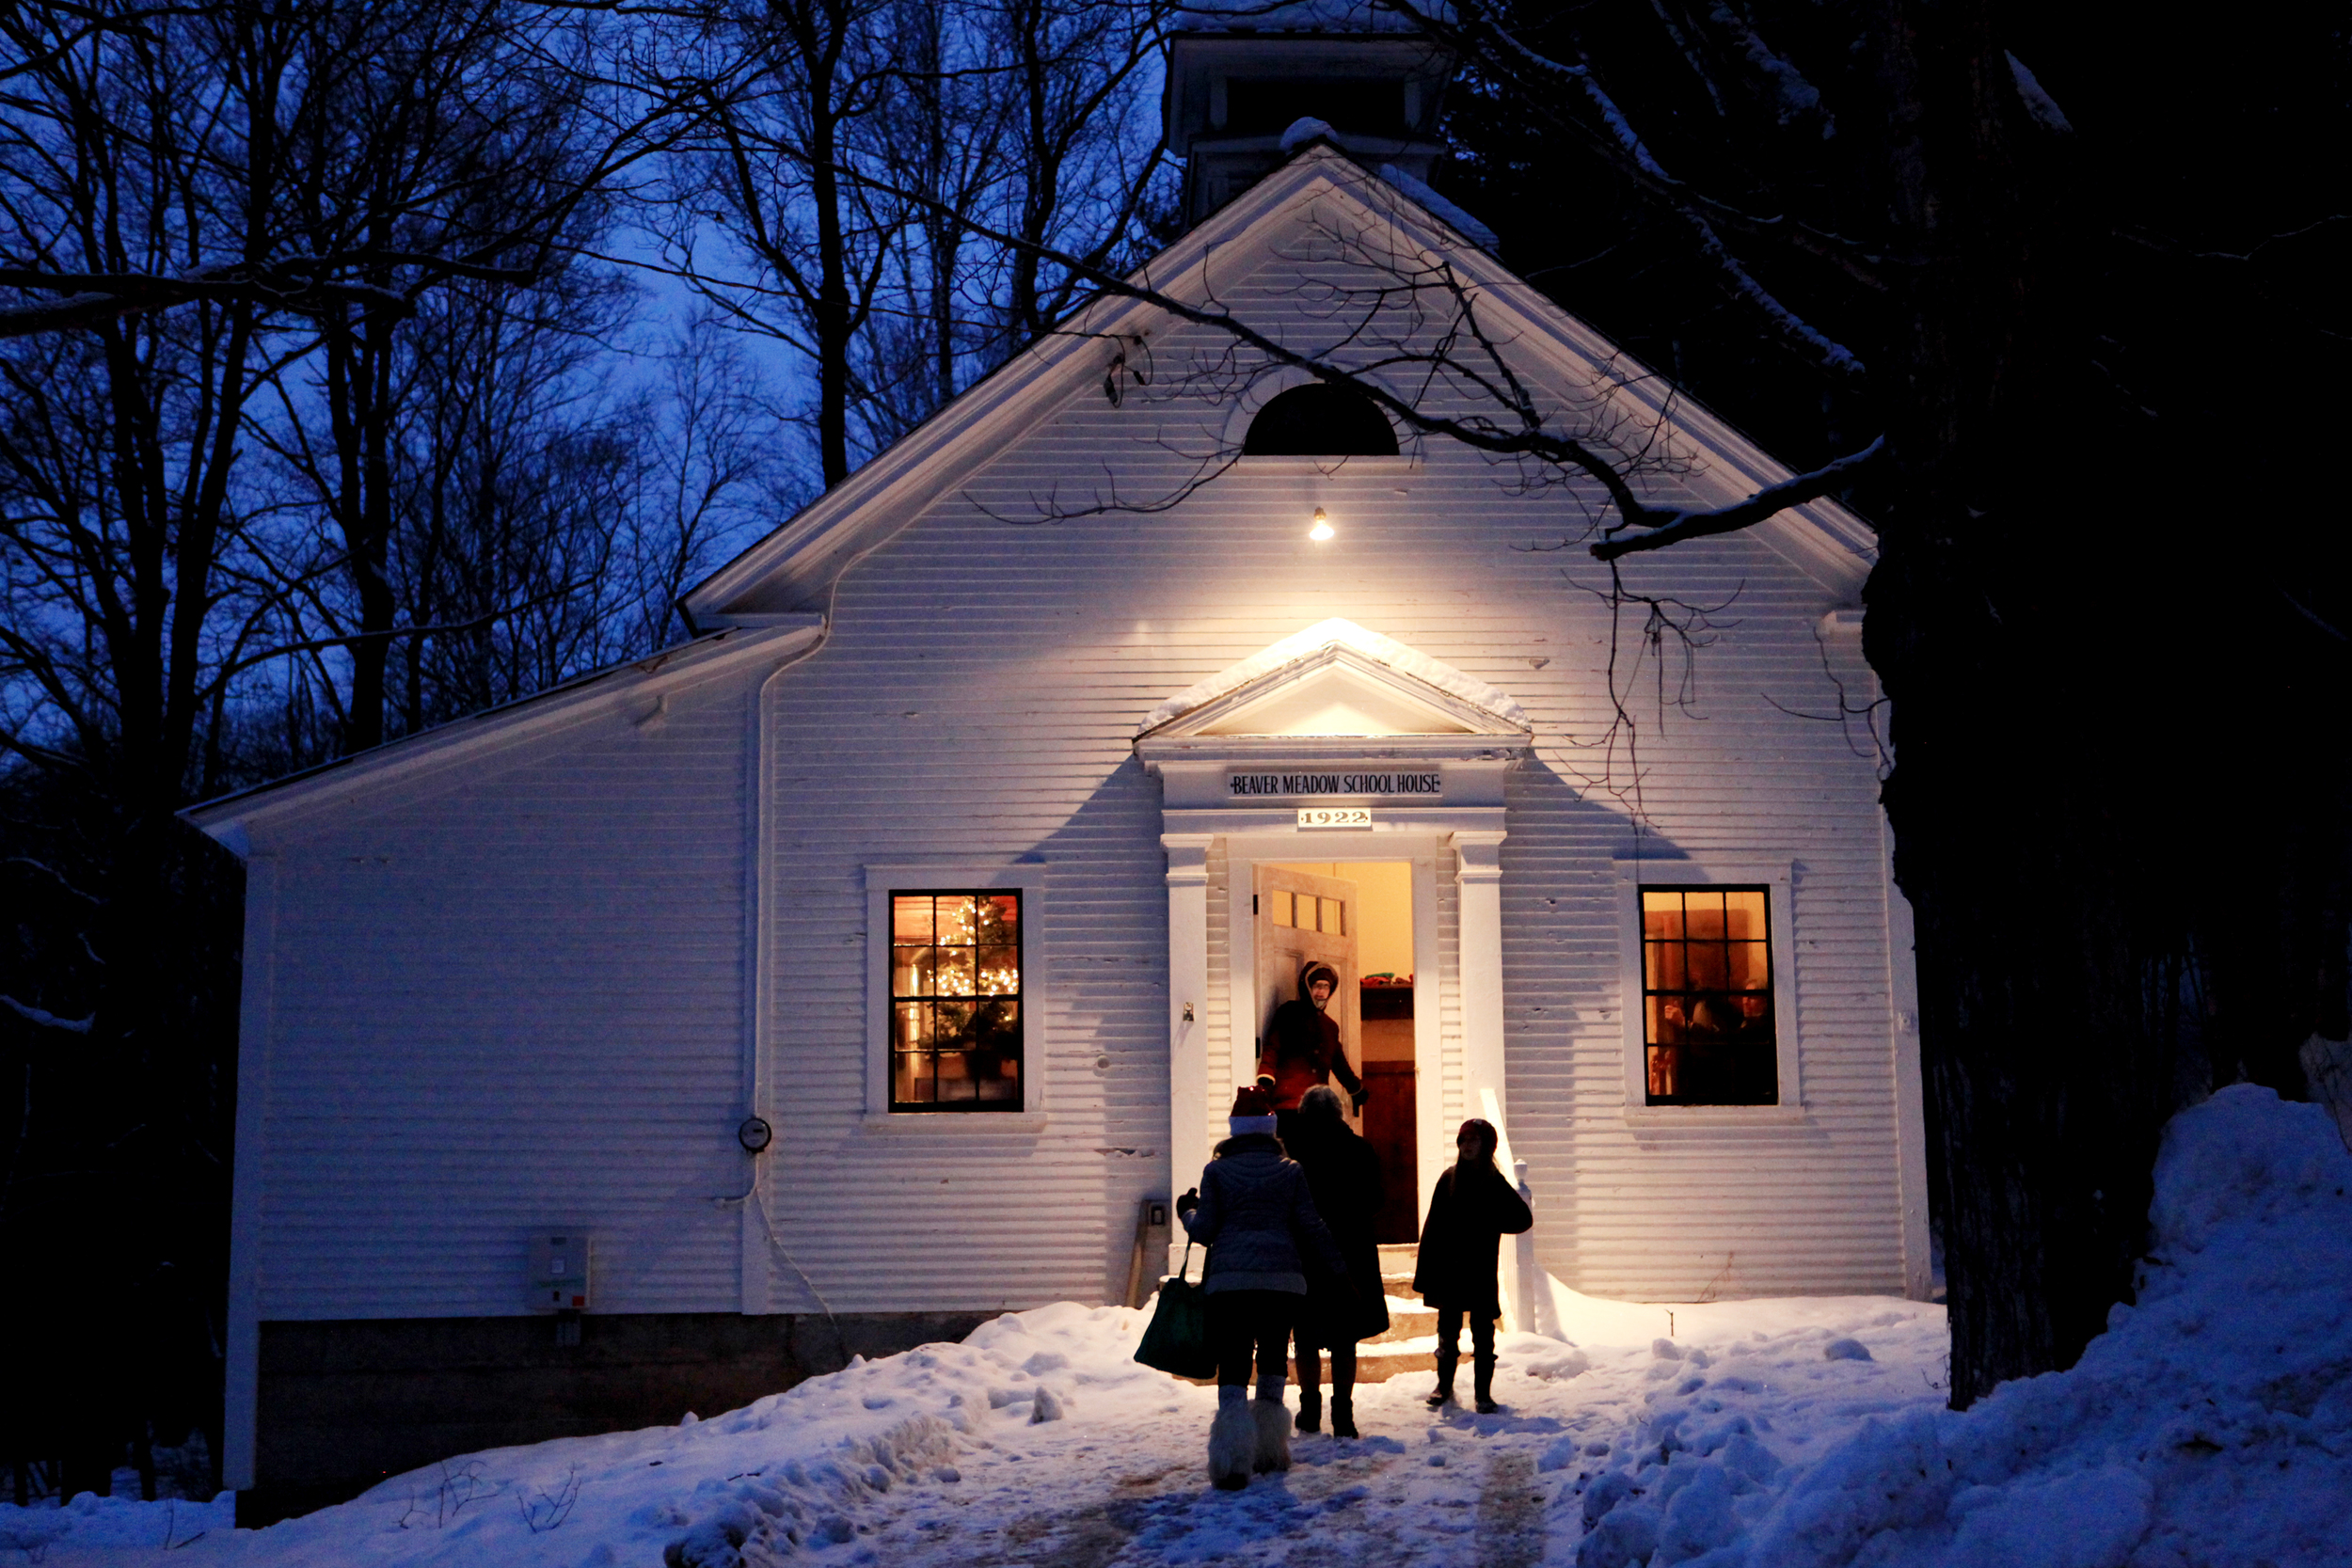 Light from the Beaver Meadow school house in Norwich, Vt. beckons those coming to the holiday service and potluck on Dec. 21, 2014.